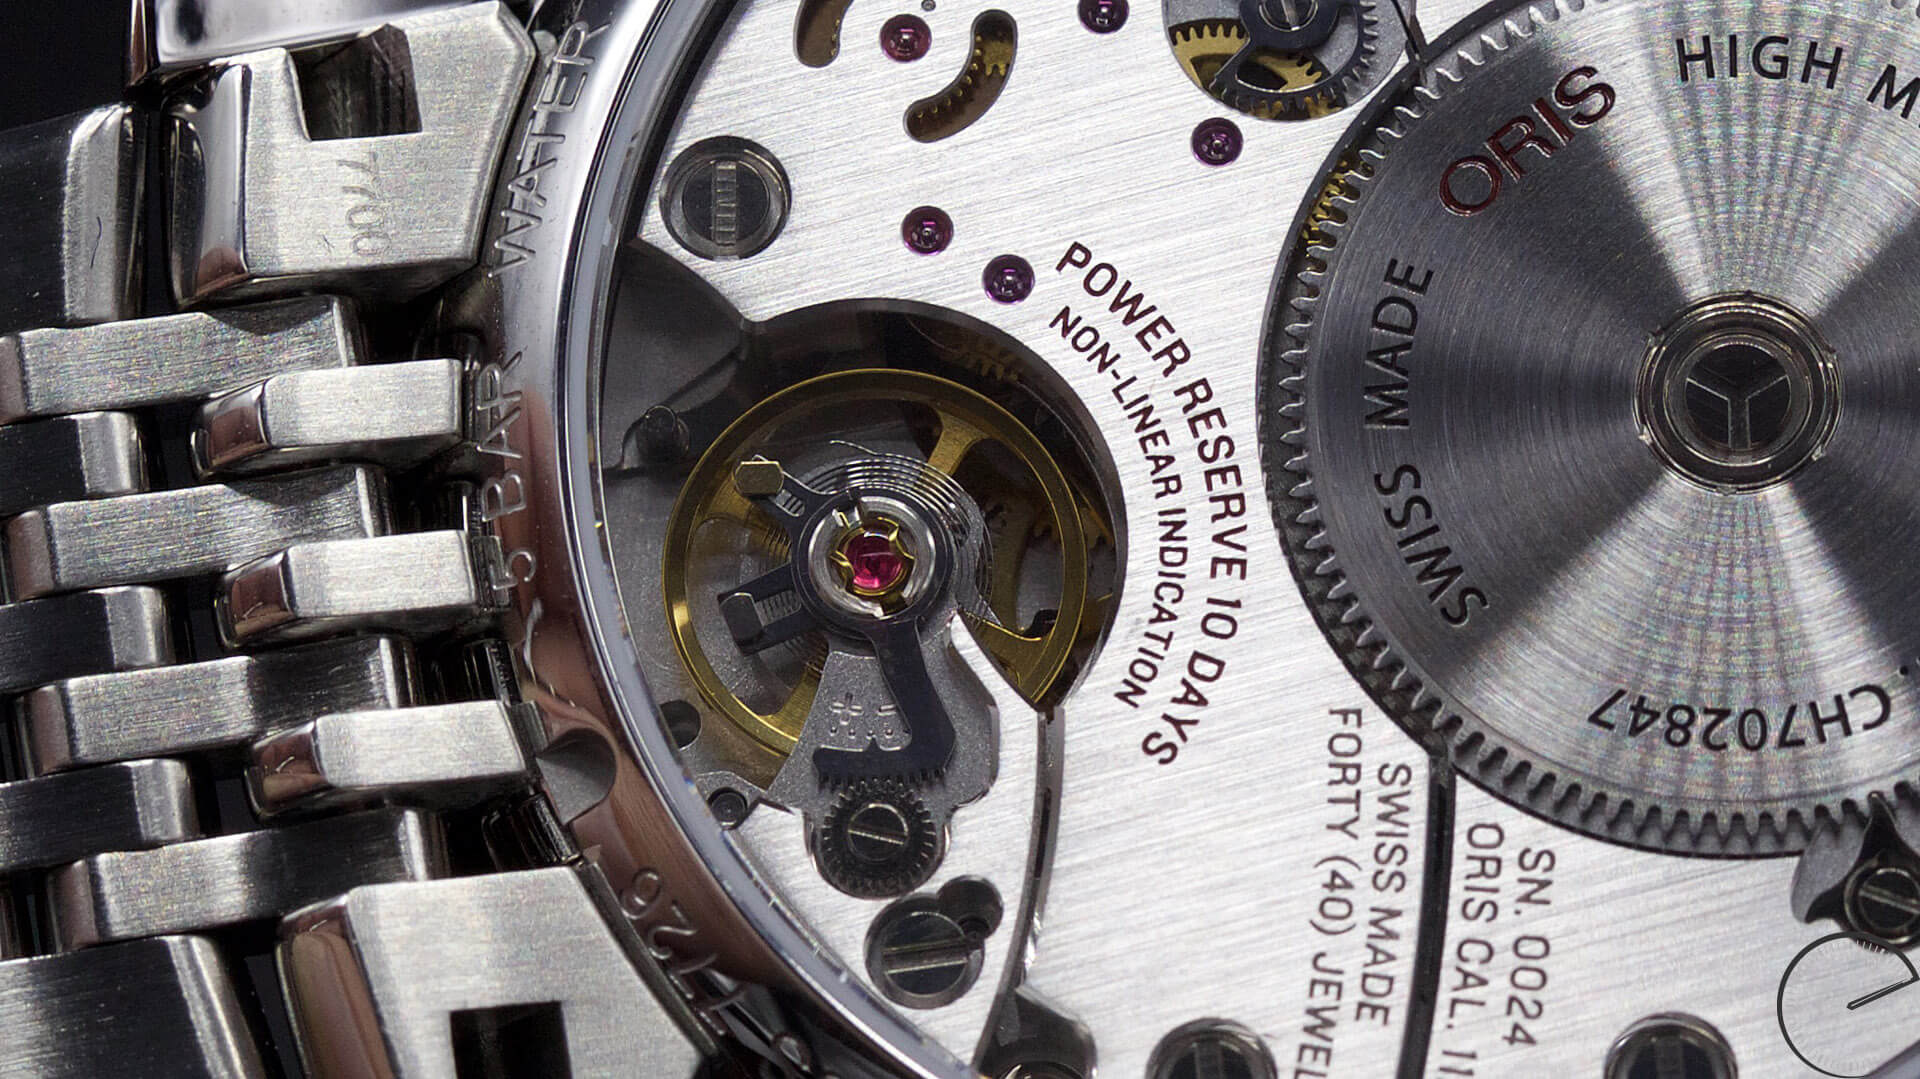 Oris_Artelier_Calibre_112_balance_wheel - ESCAPEMENT MAGAZINE - watch reviews by Angus Davies